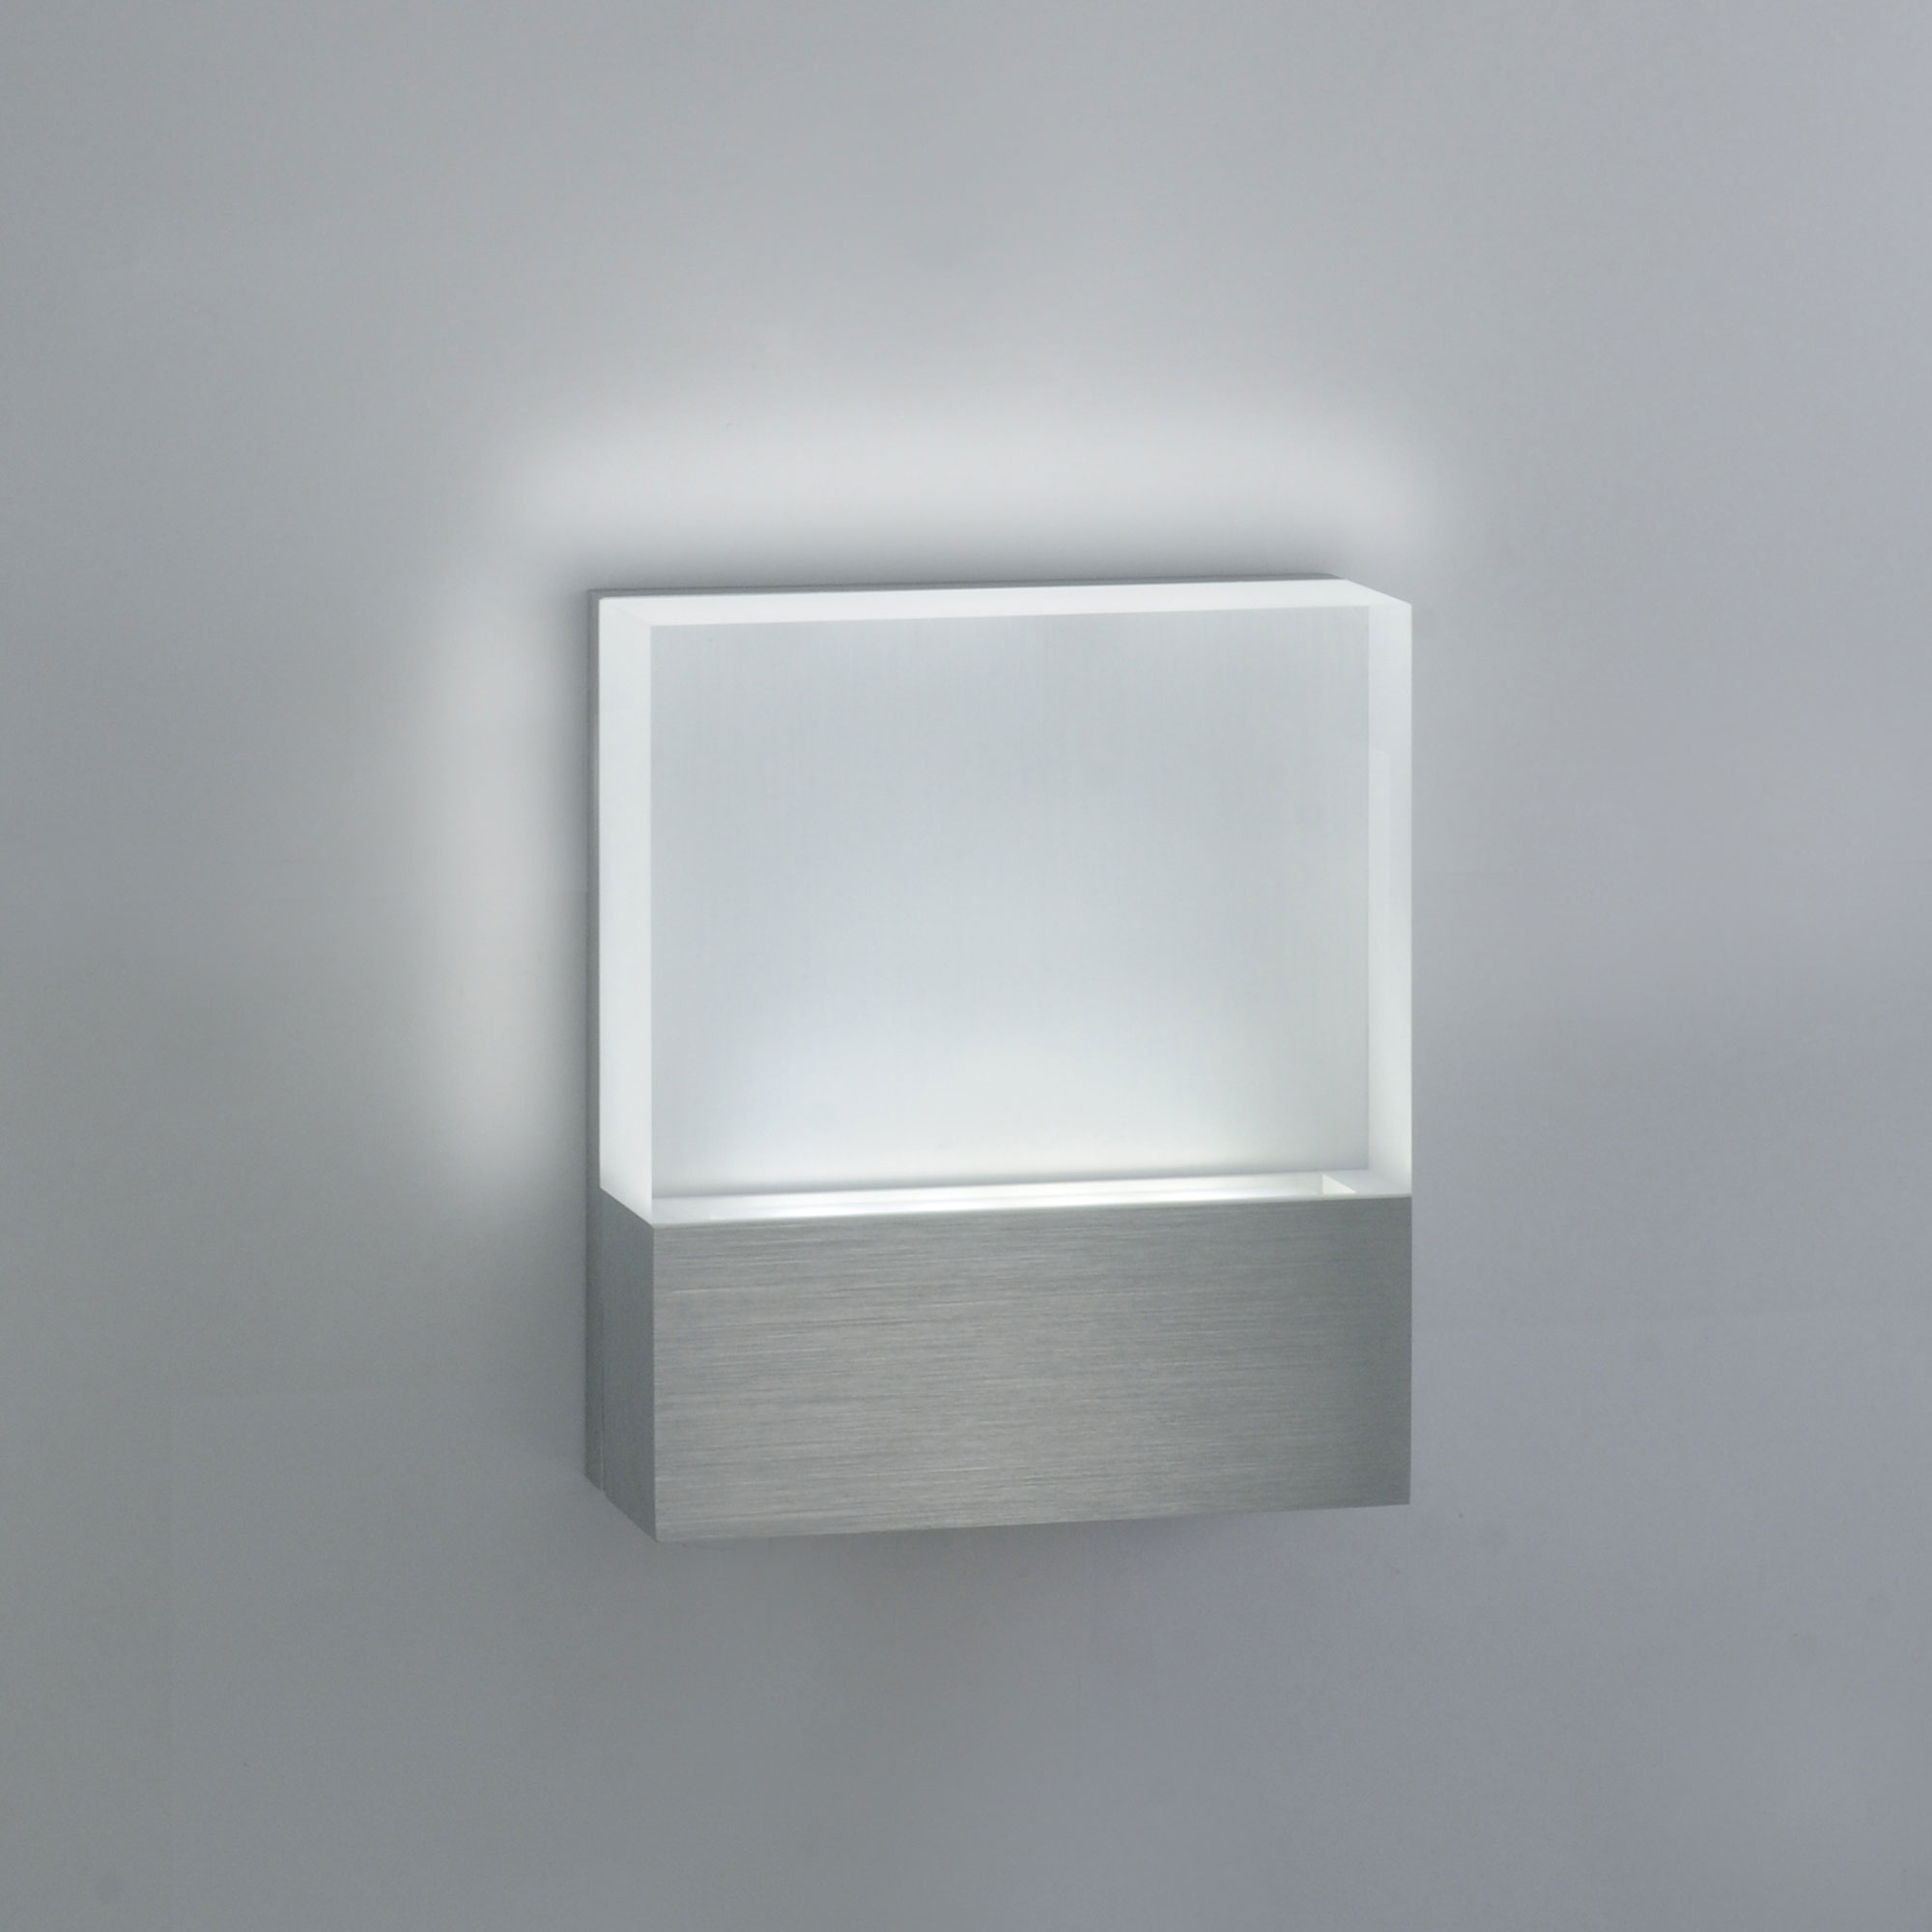 TV LED ELV Dimmable Wall Sconce by Edge Lighting TV-W-L1-ELV-SA